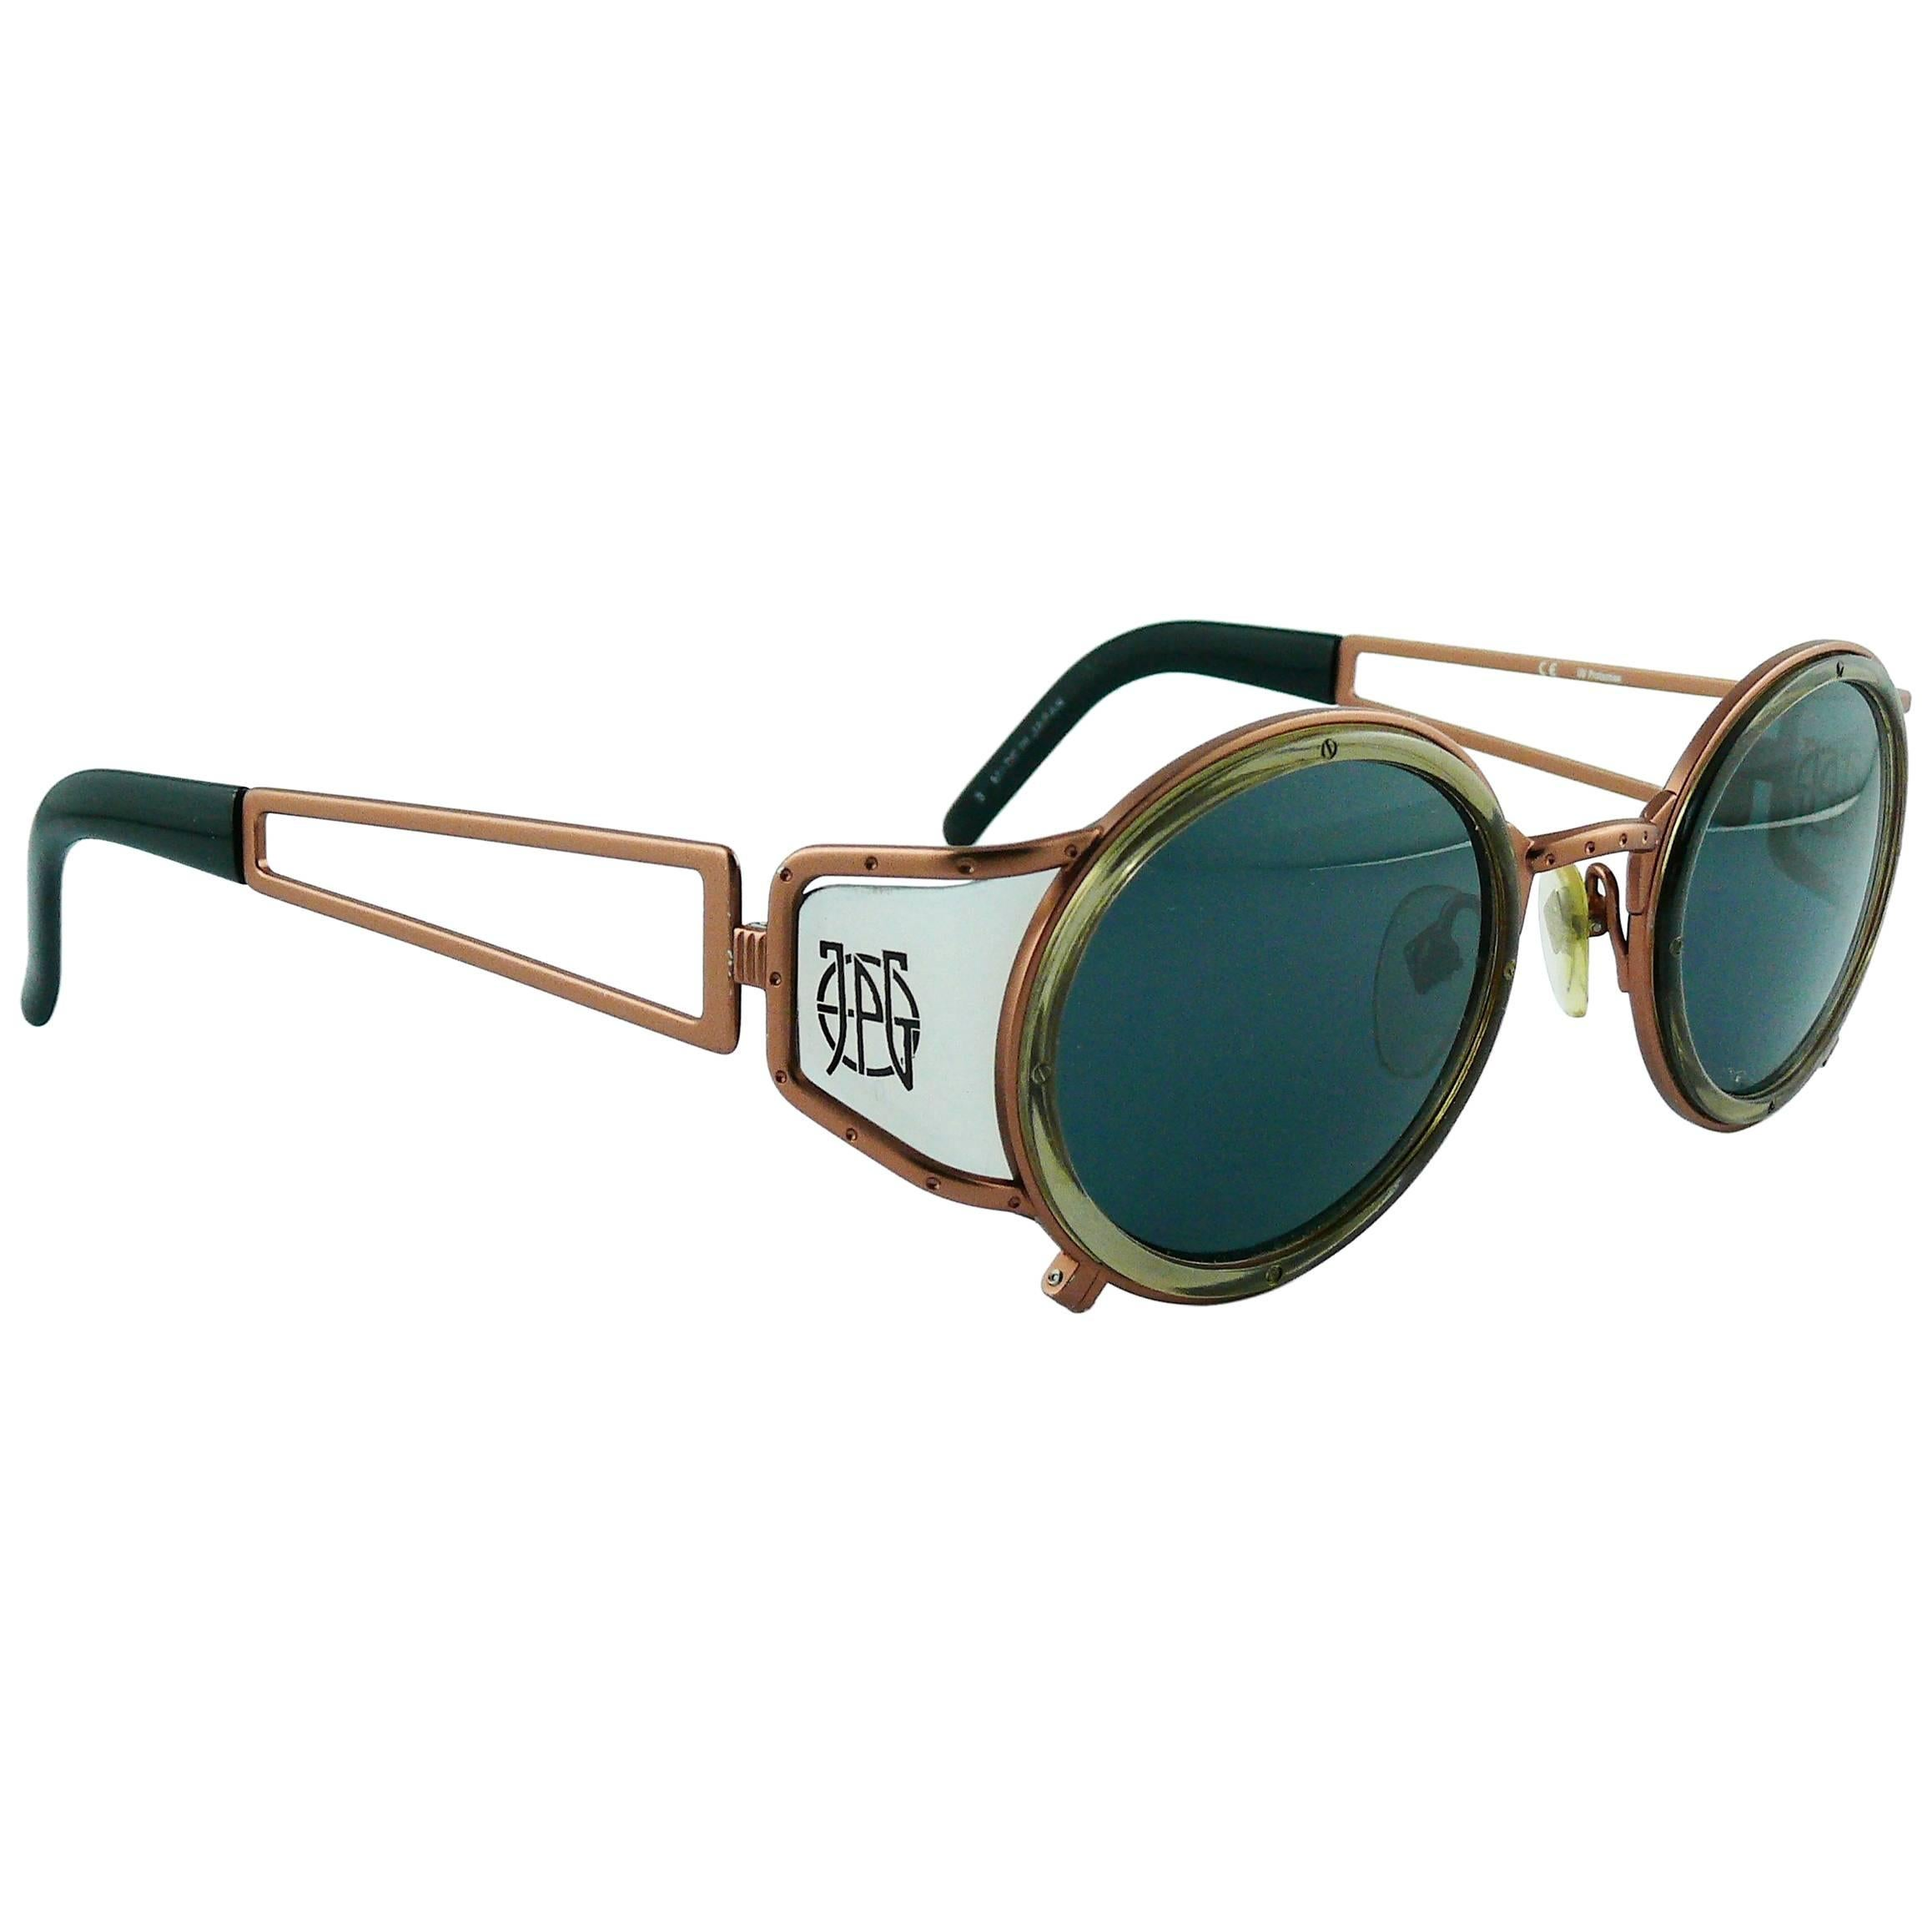 Jean Side With 6201 Paul Vintage Sunglasses 58 Shields Gaultier 2EYeWHID9